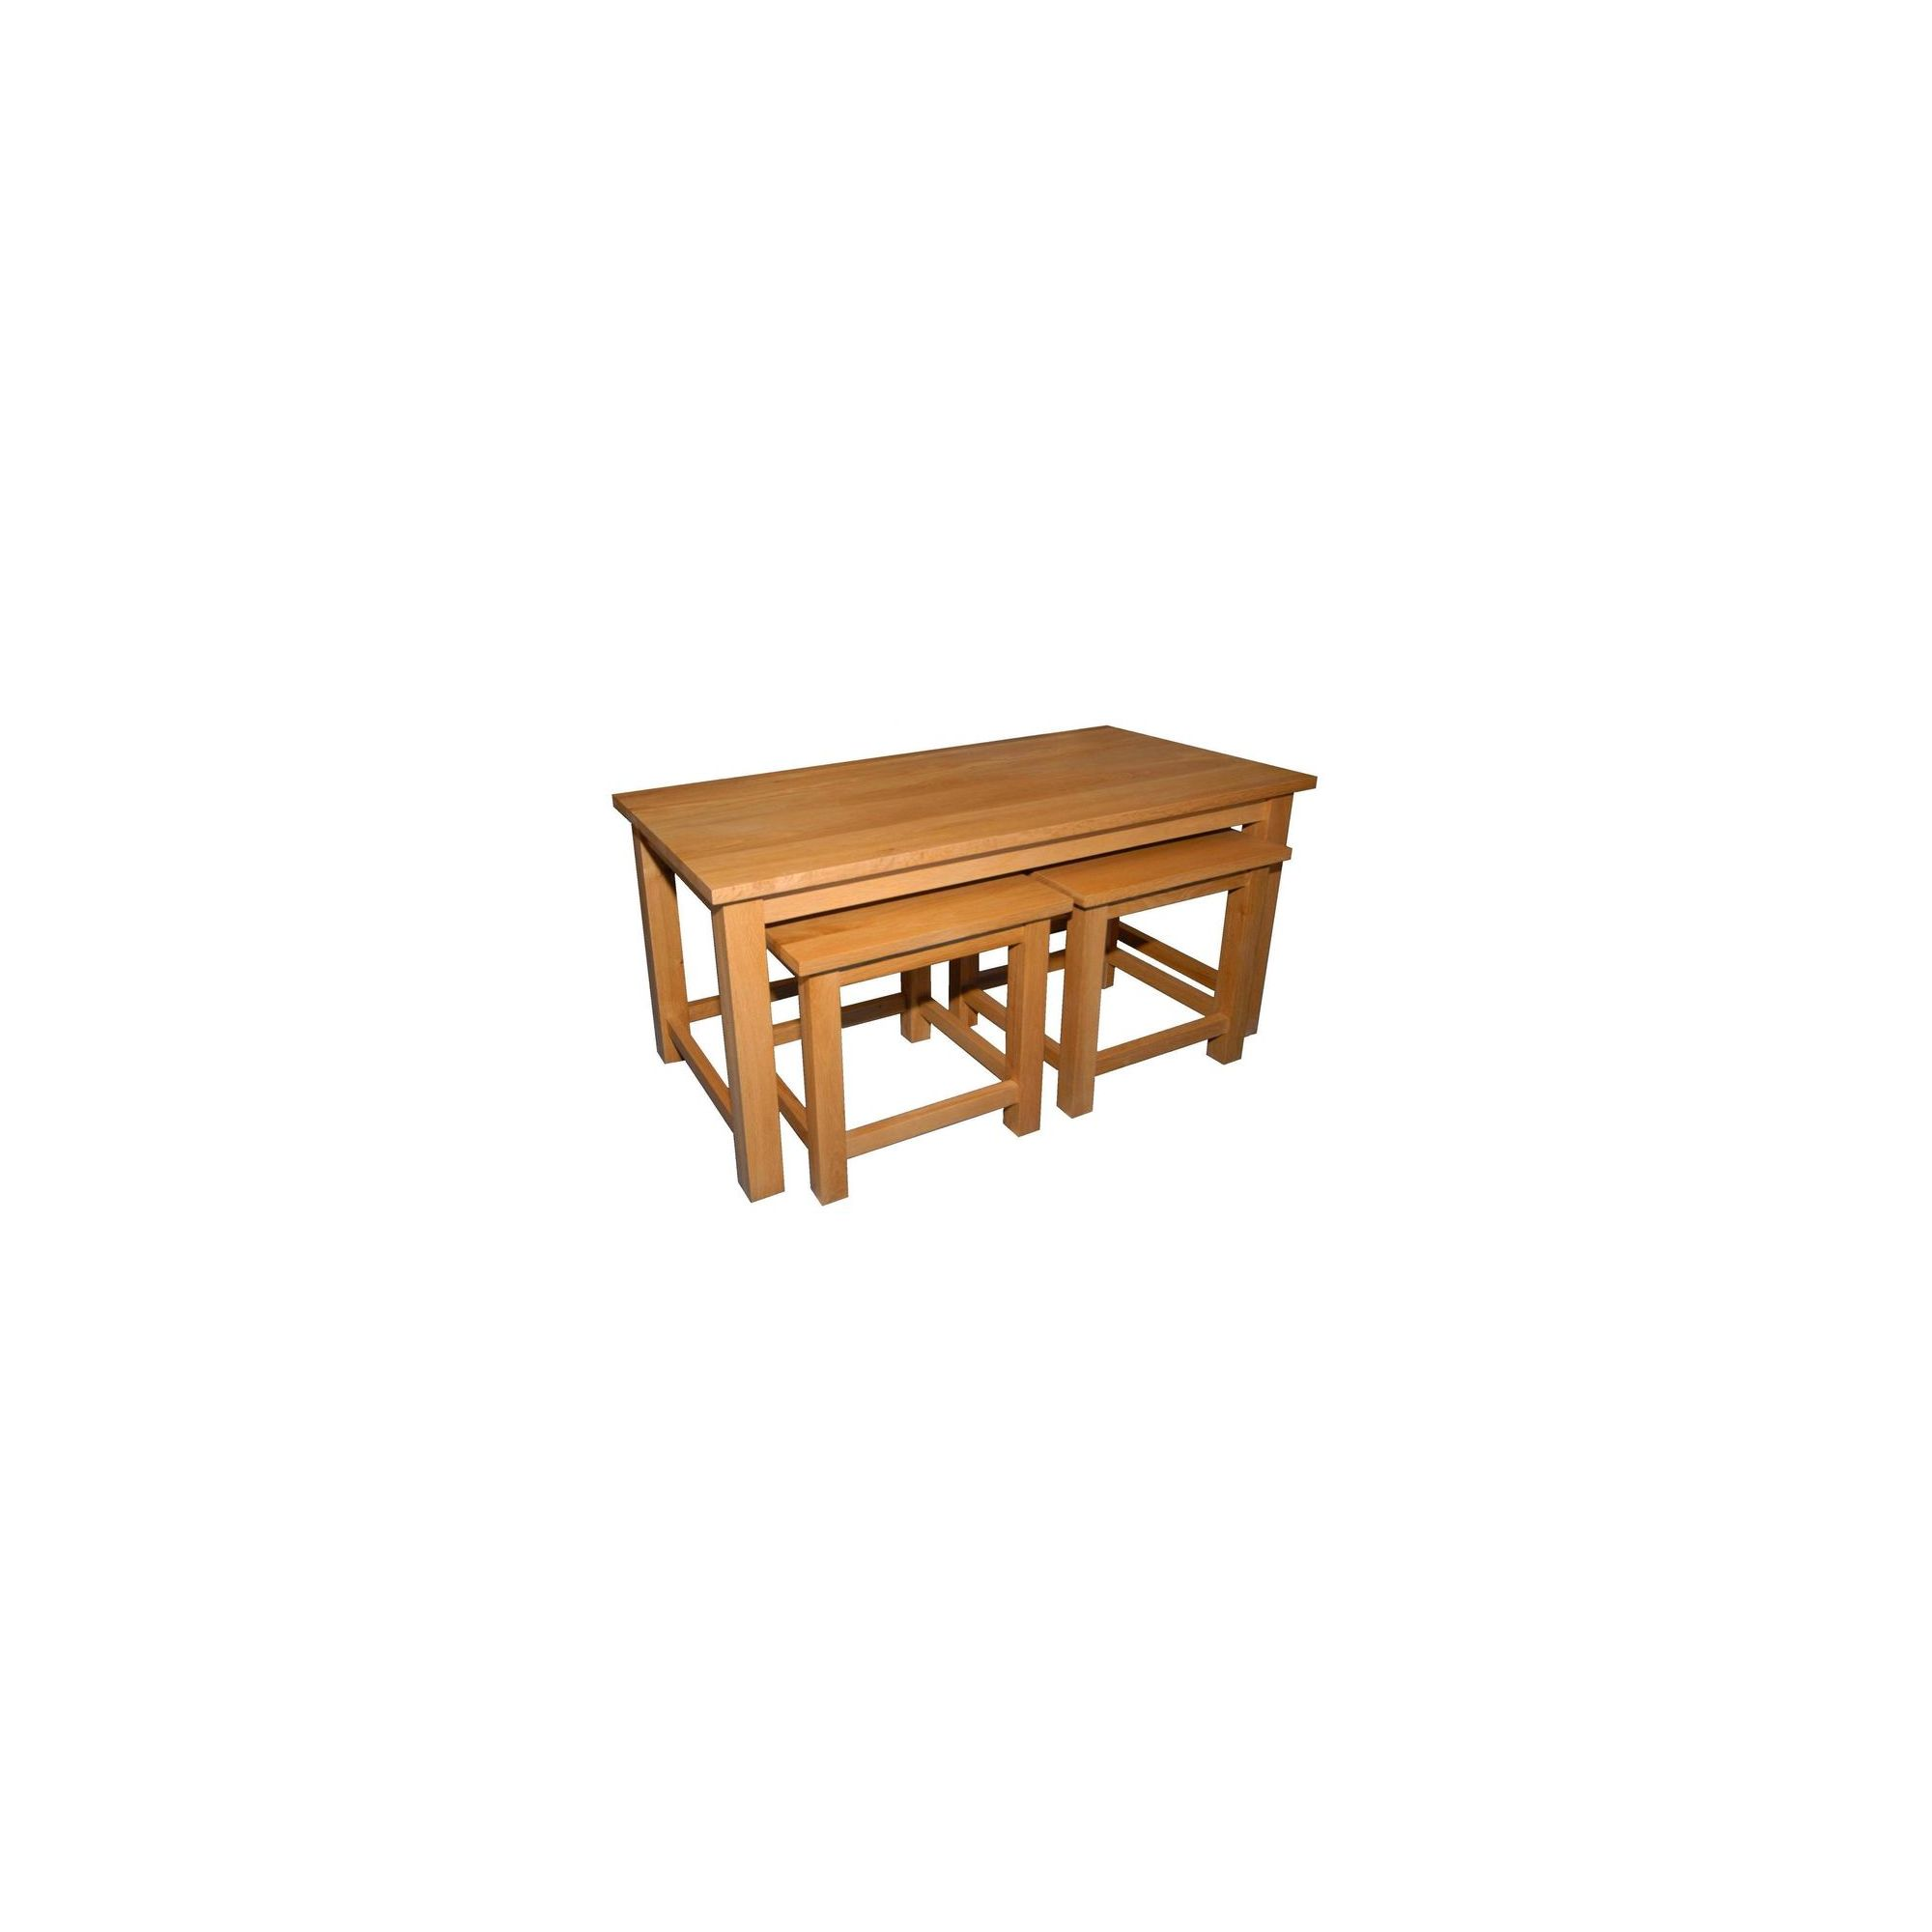 Kelburn Furniture Essentials 3 Piece Nest of Coffee Table Set in Light Oak Stain and Satin Lacquer at Tesco Direct